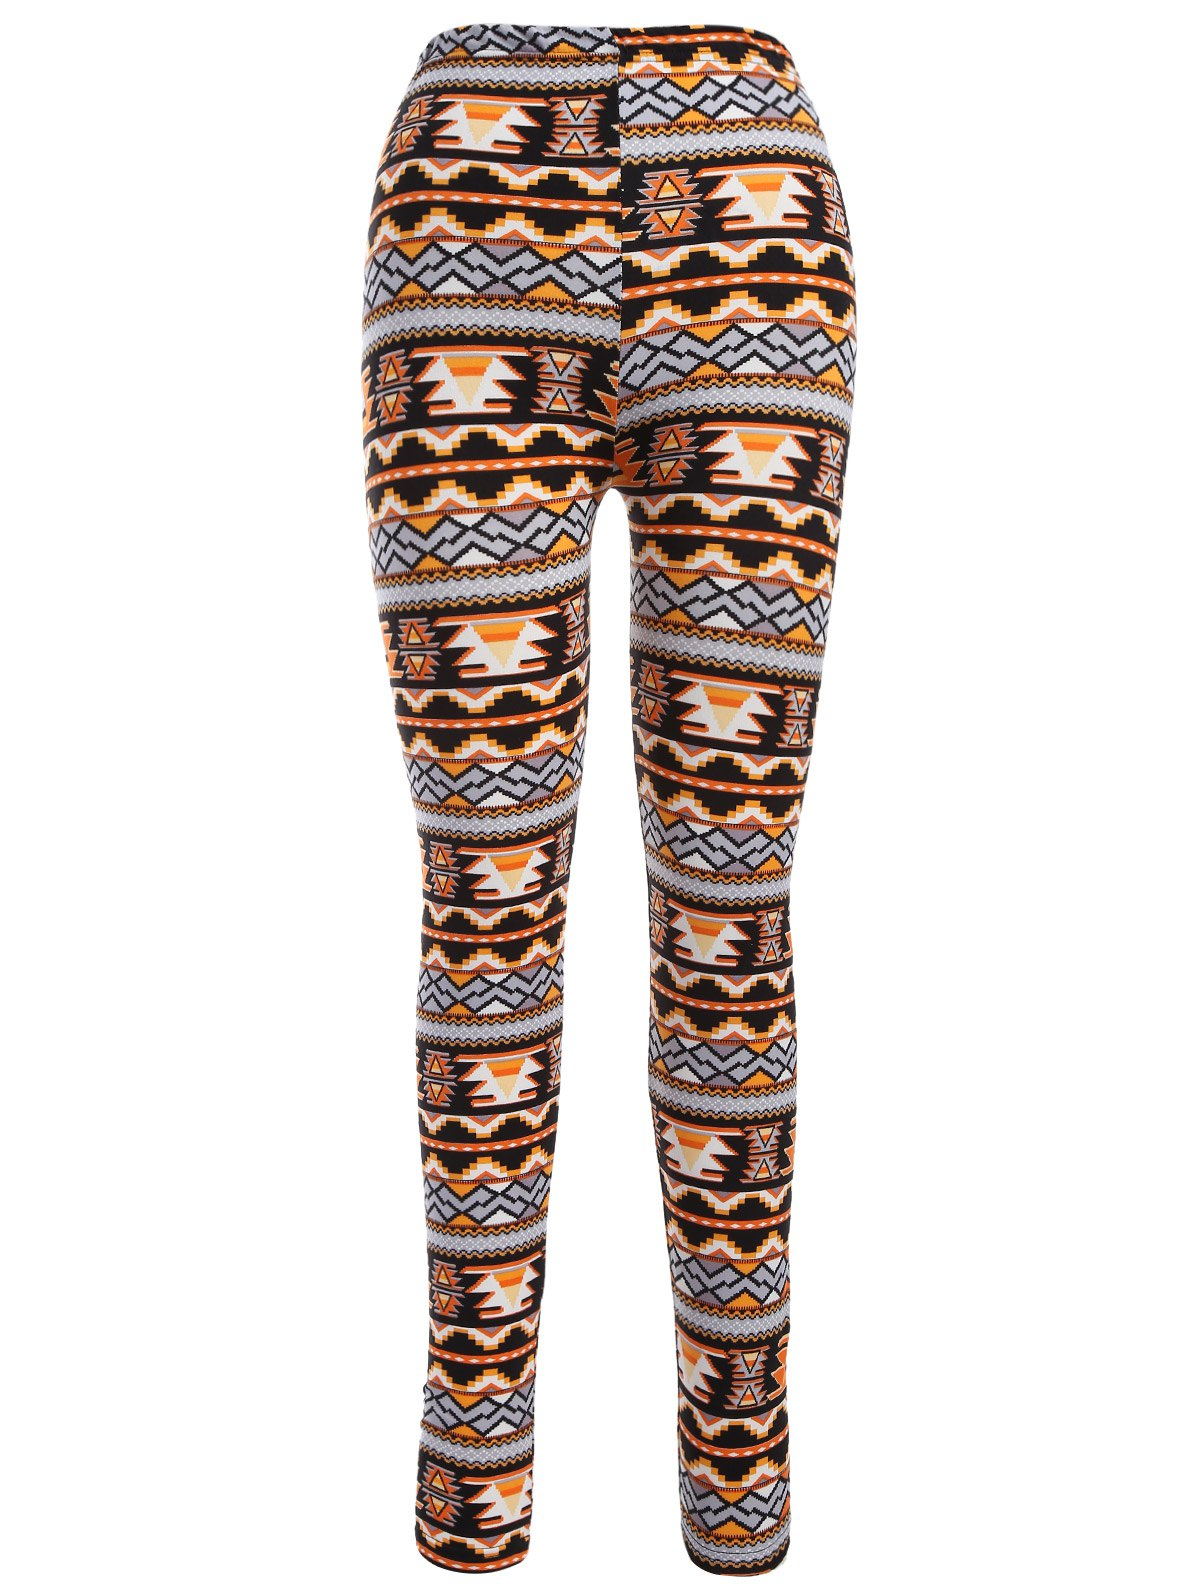 Best Aztec Print Ankle Leggings